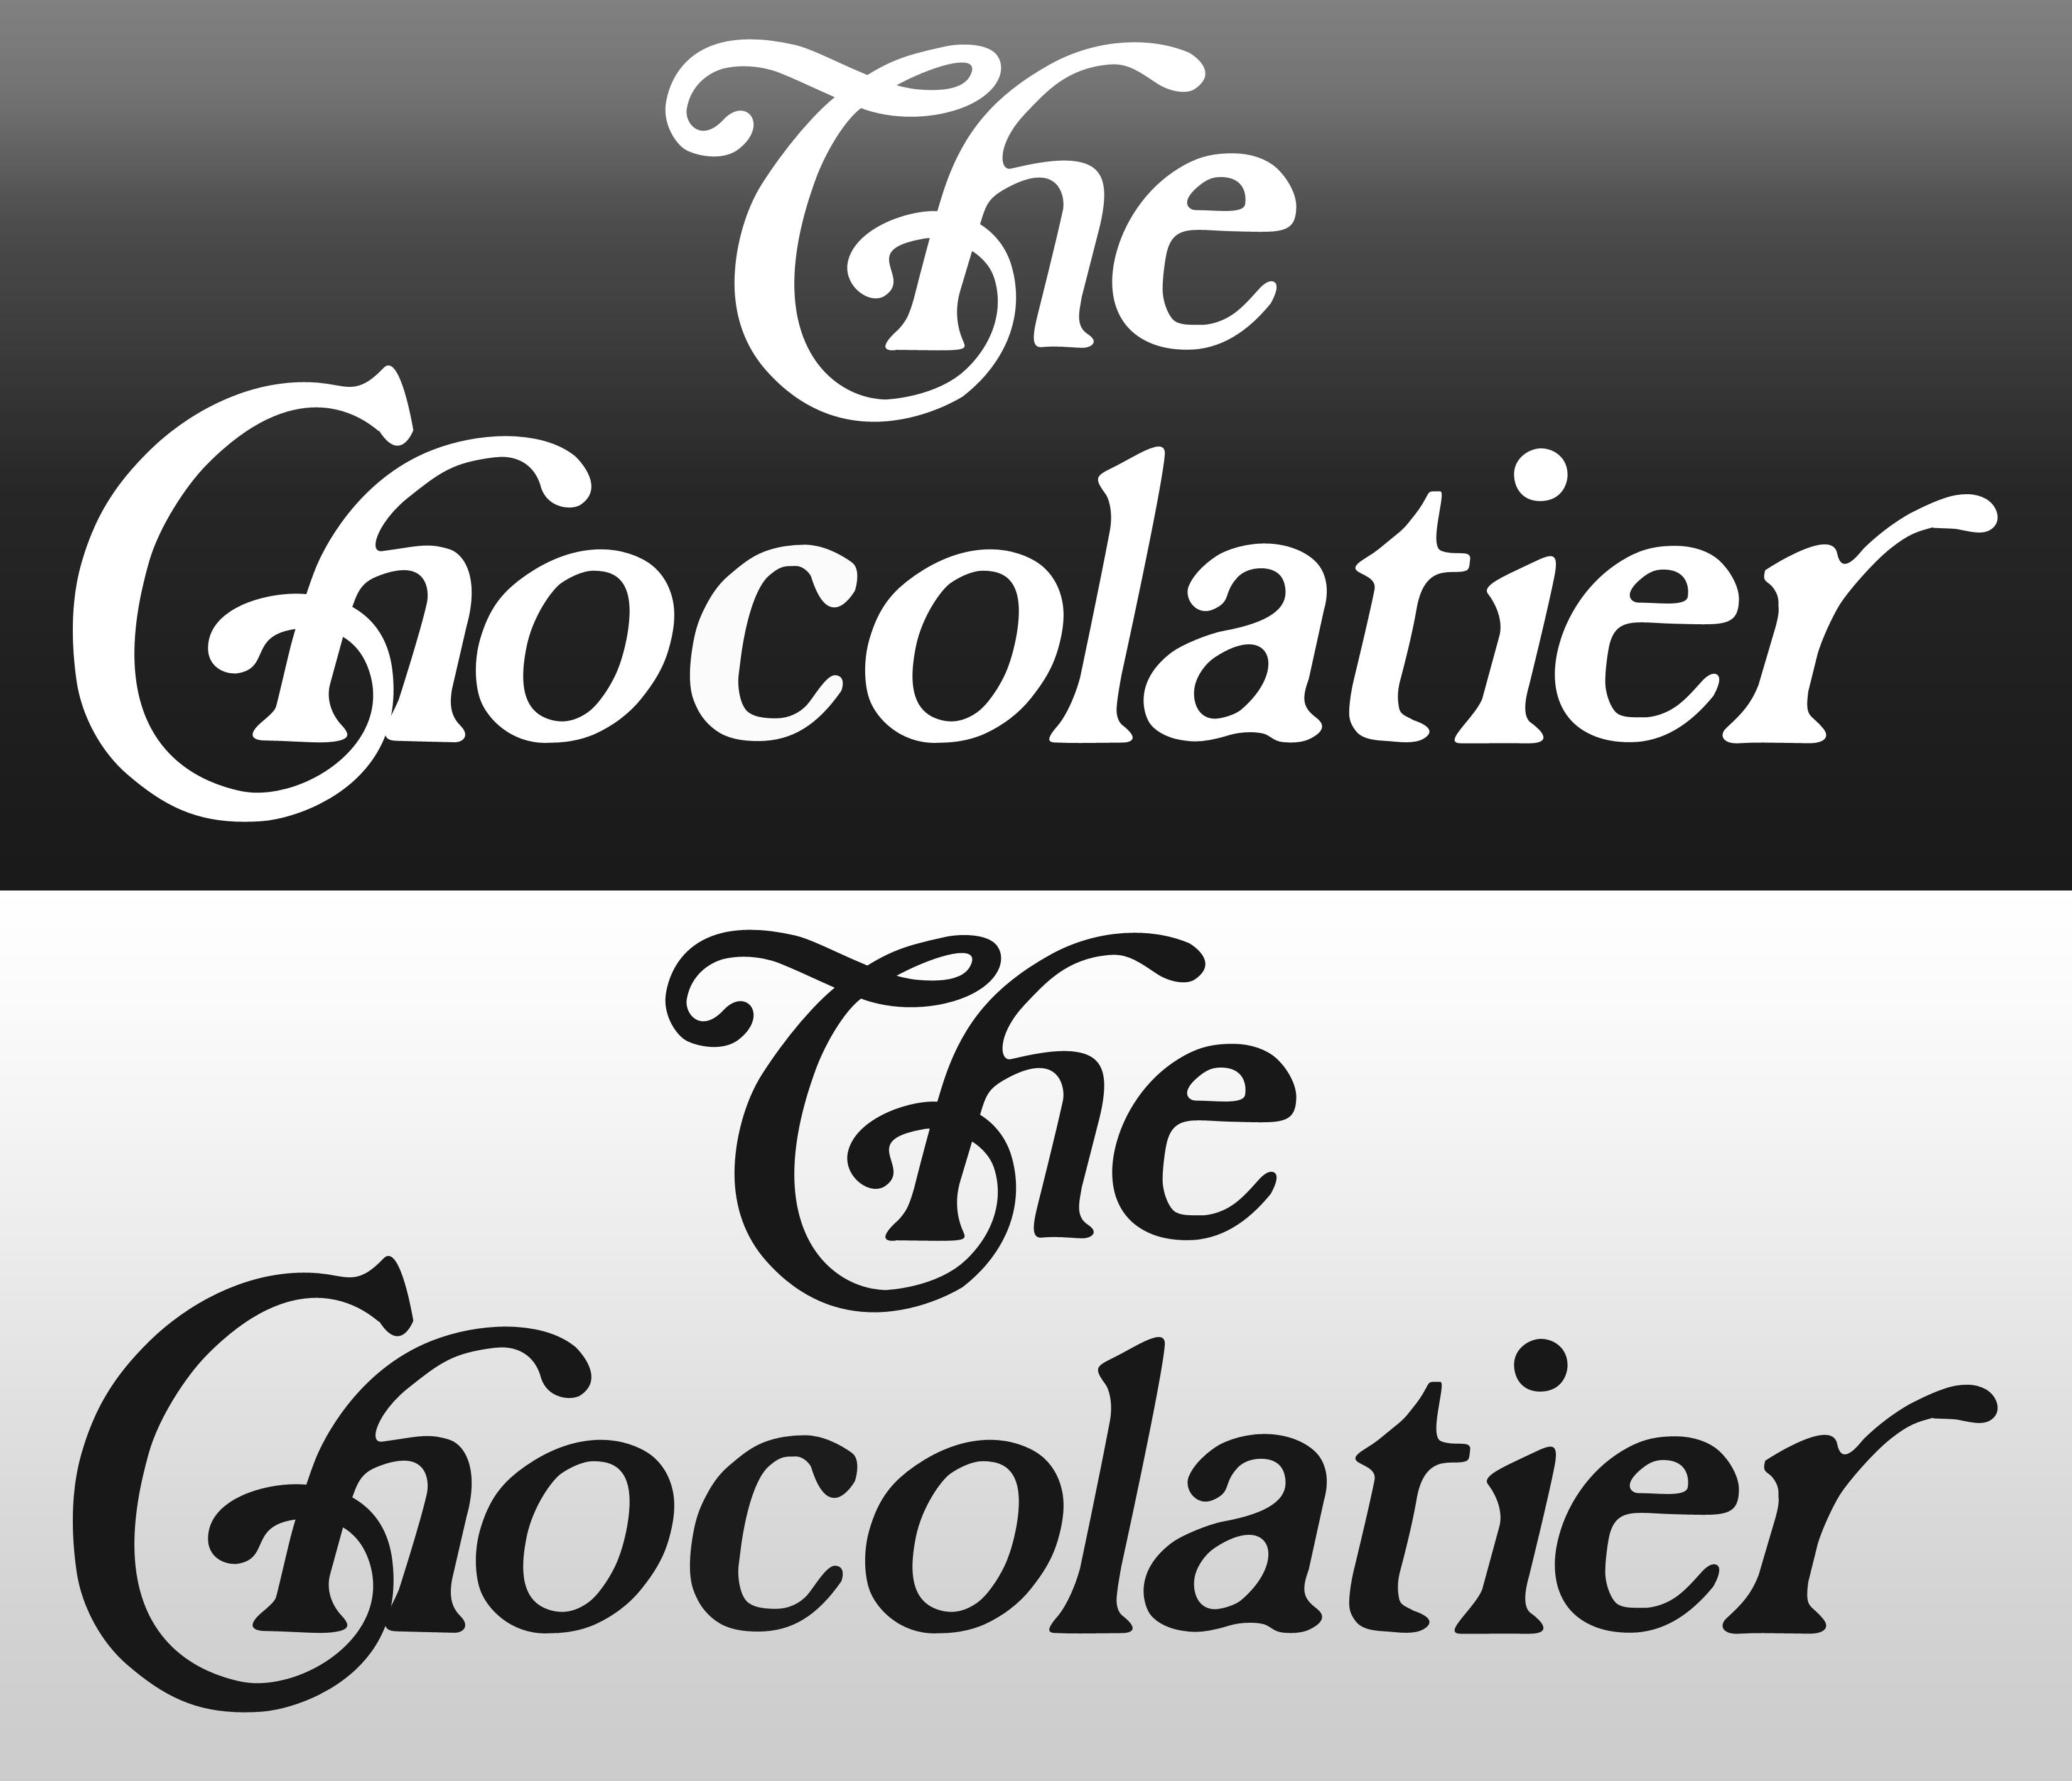 Contest Entry for The Chocolatier Logo Touch-Up